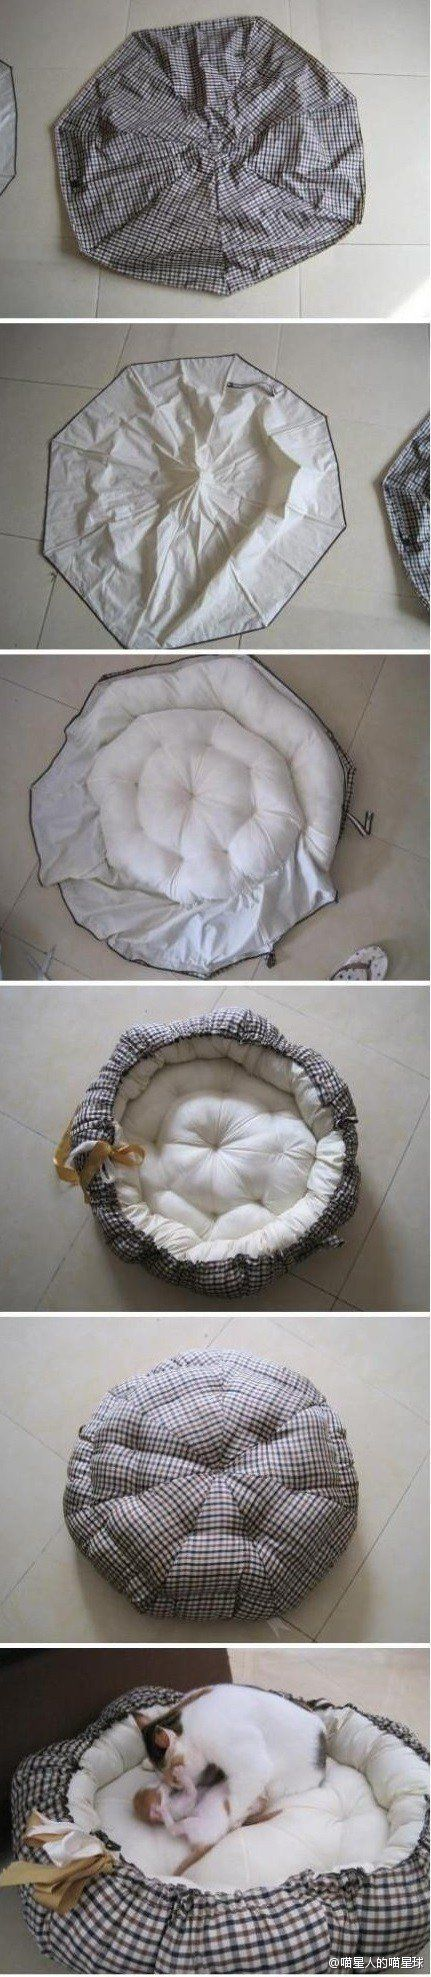 recycling an abandoned umbrella to make a kitty bed. wo ho how!!